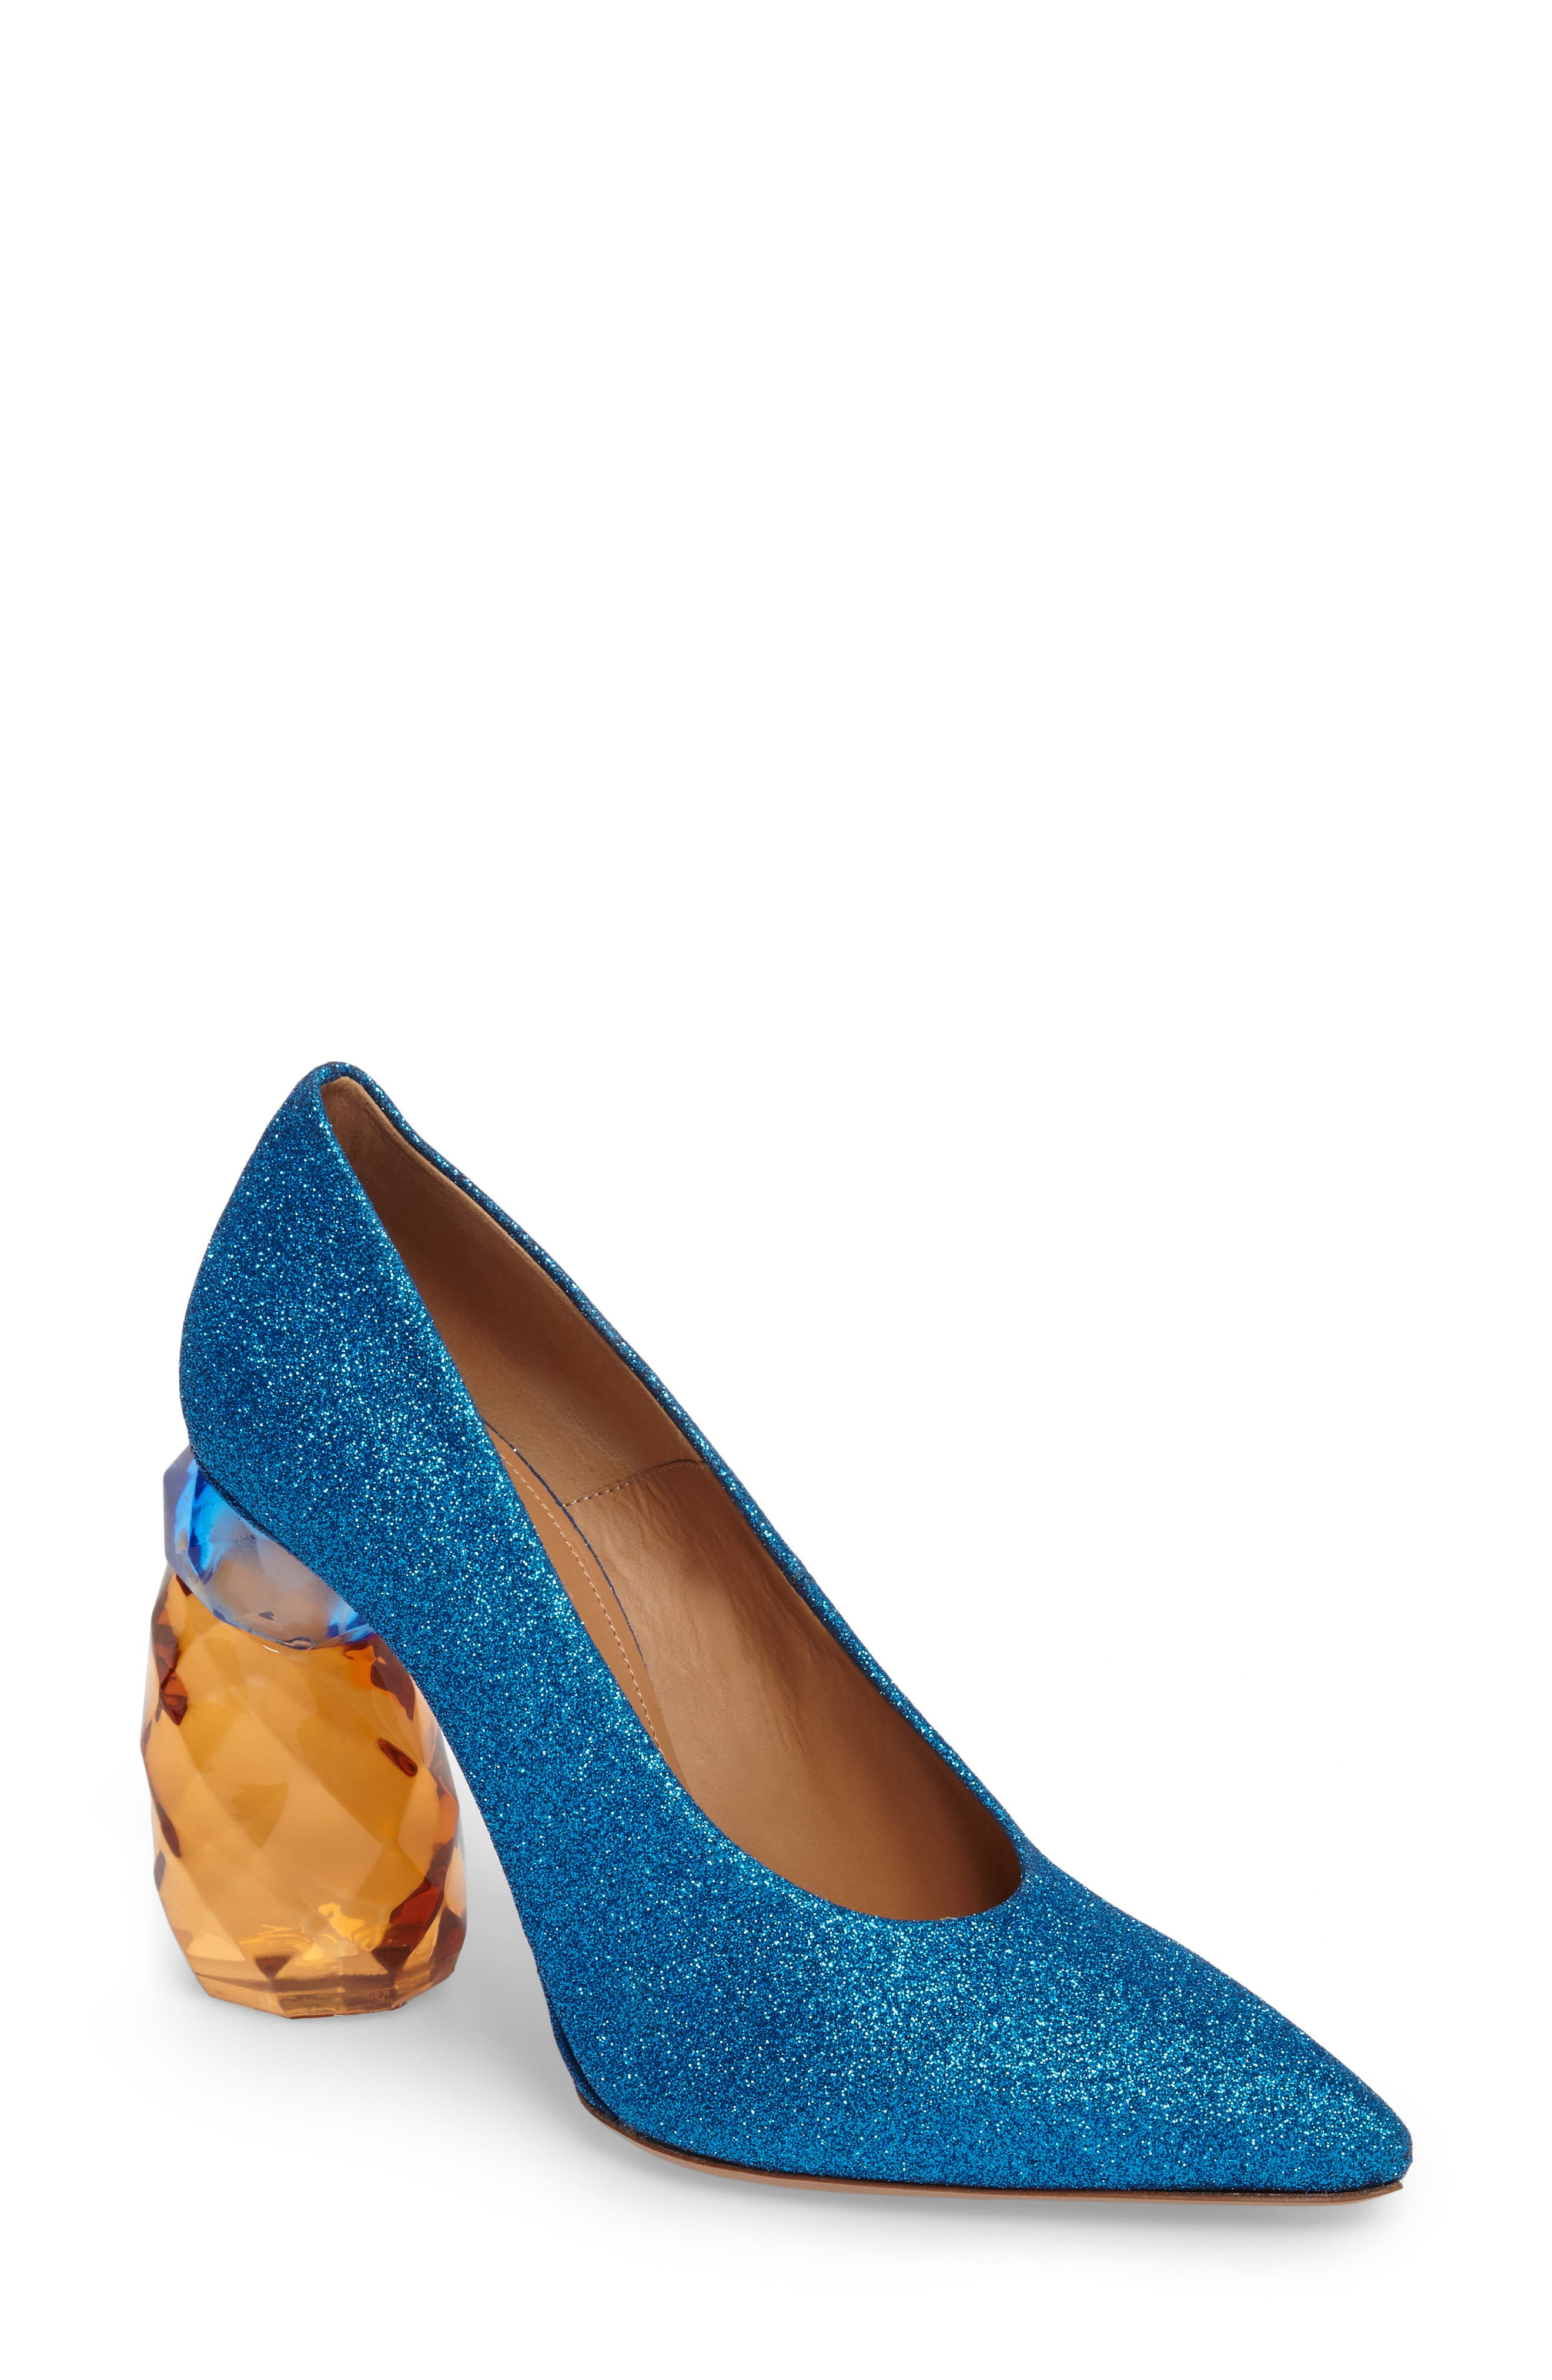 Alternate Image 1 Selected - Dries Van Noten Jewel Heel Pump (Women)